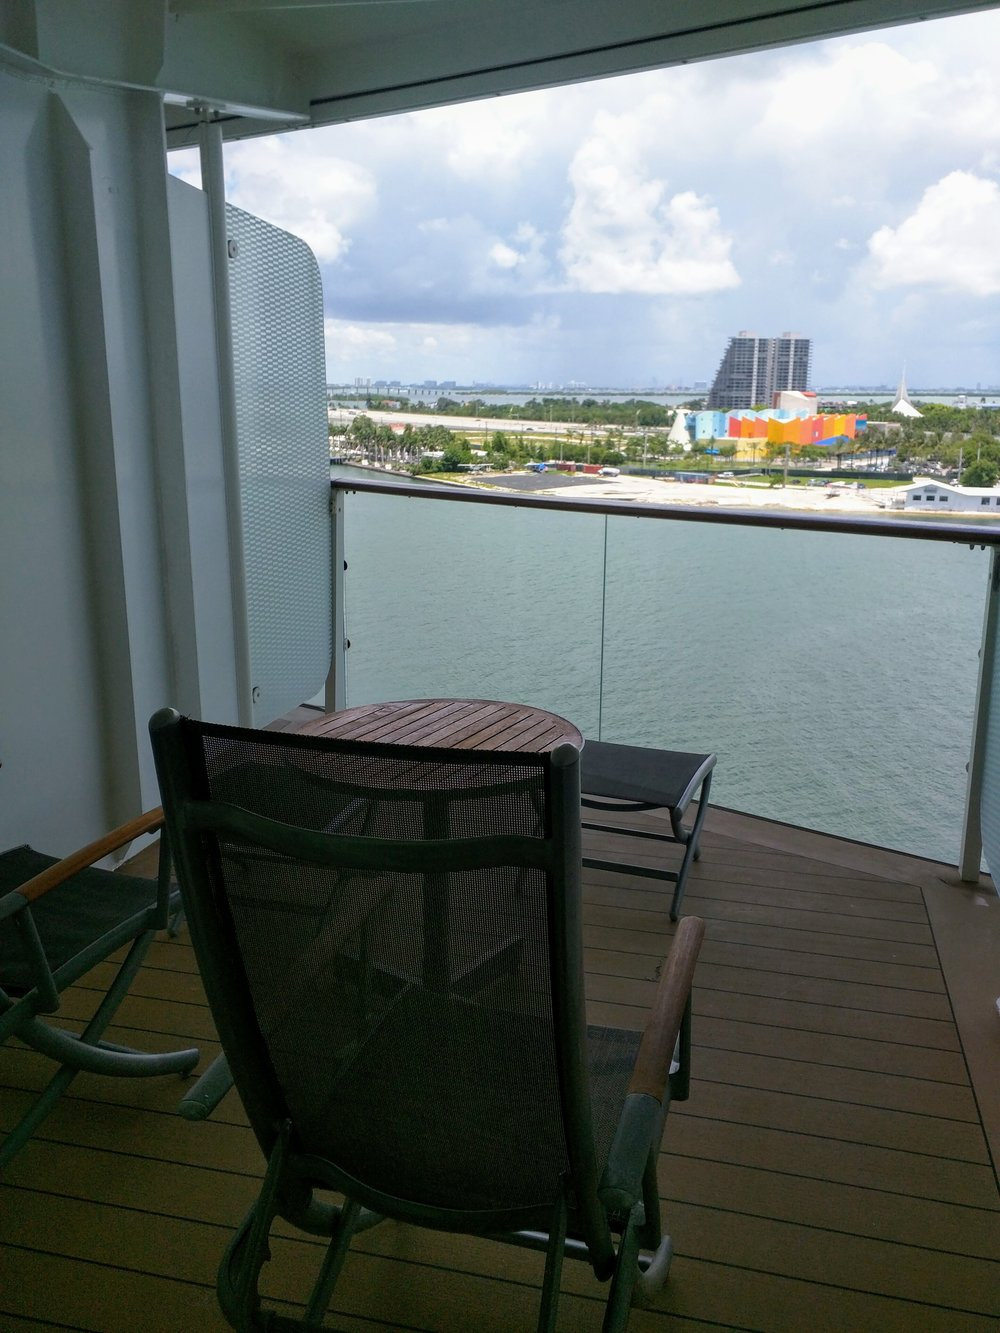 C2 Stateroom 1231 with extra long balcony on deck 10 next to the Celebrity and Royal suites.